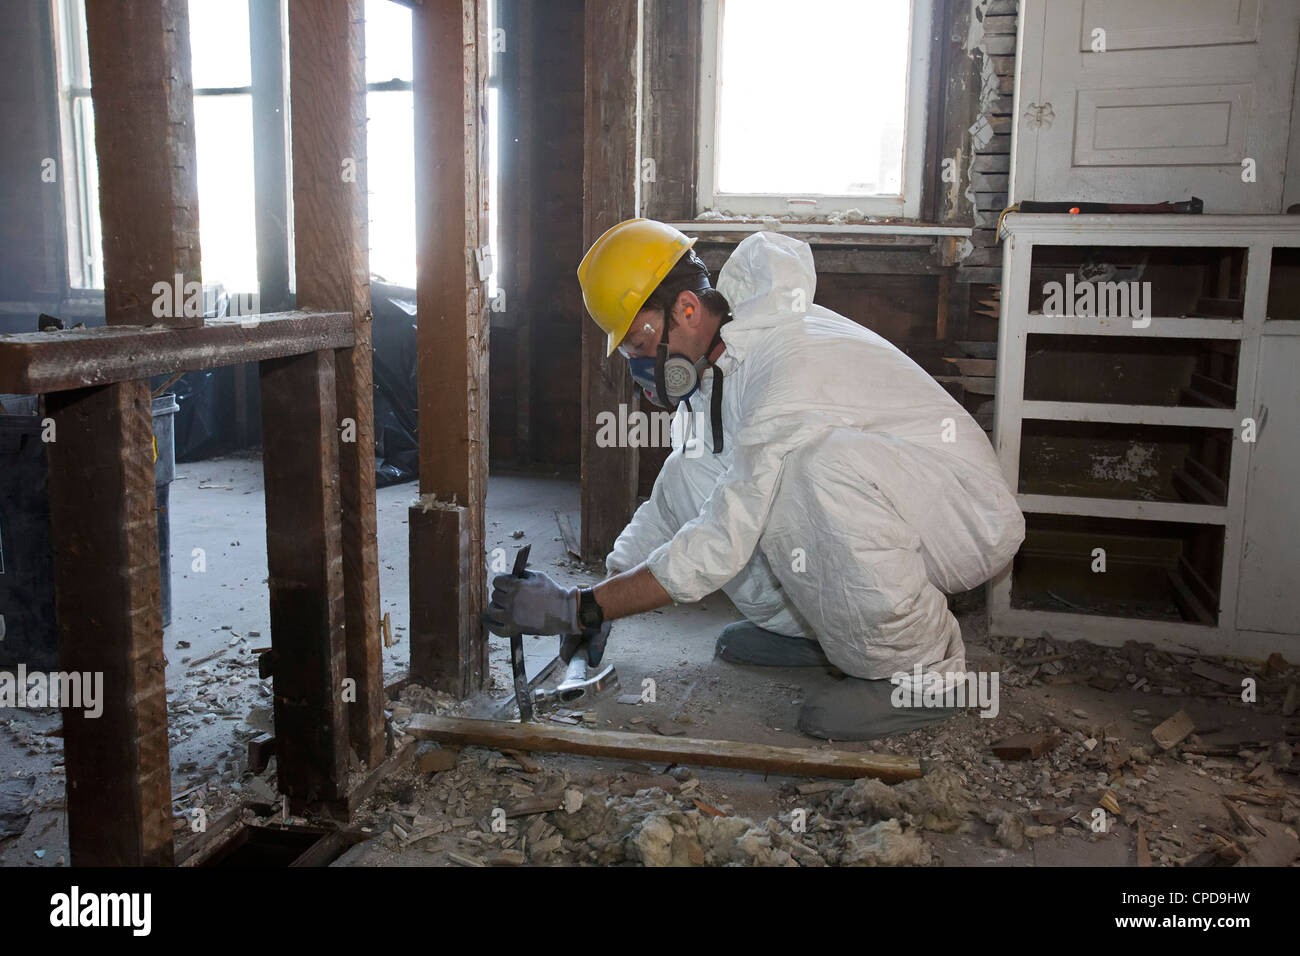 Workers salvage building materials from a home being 'deconstructed.' - Stock Image